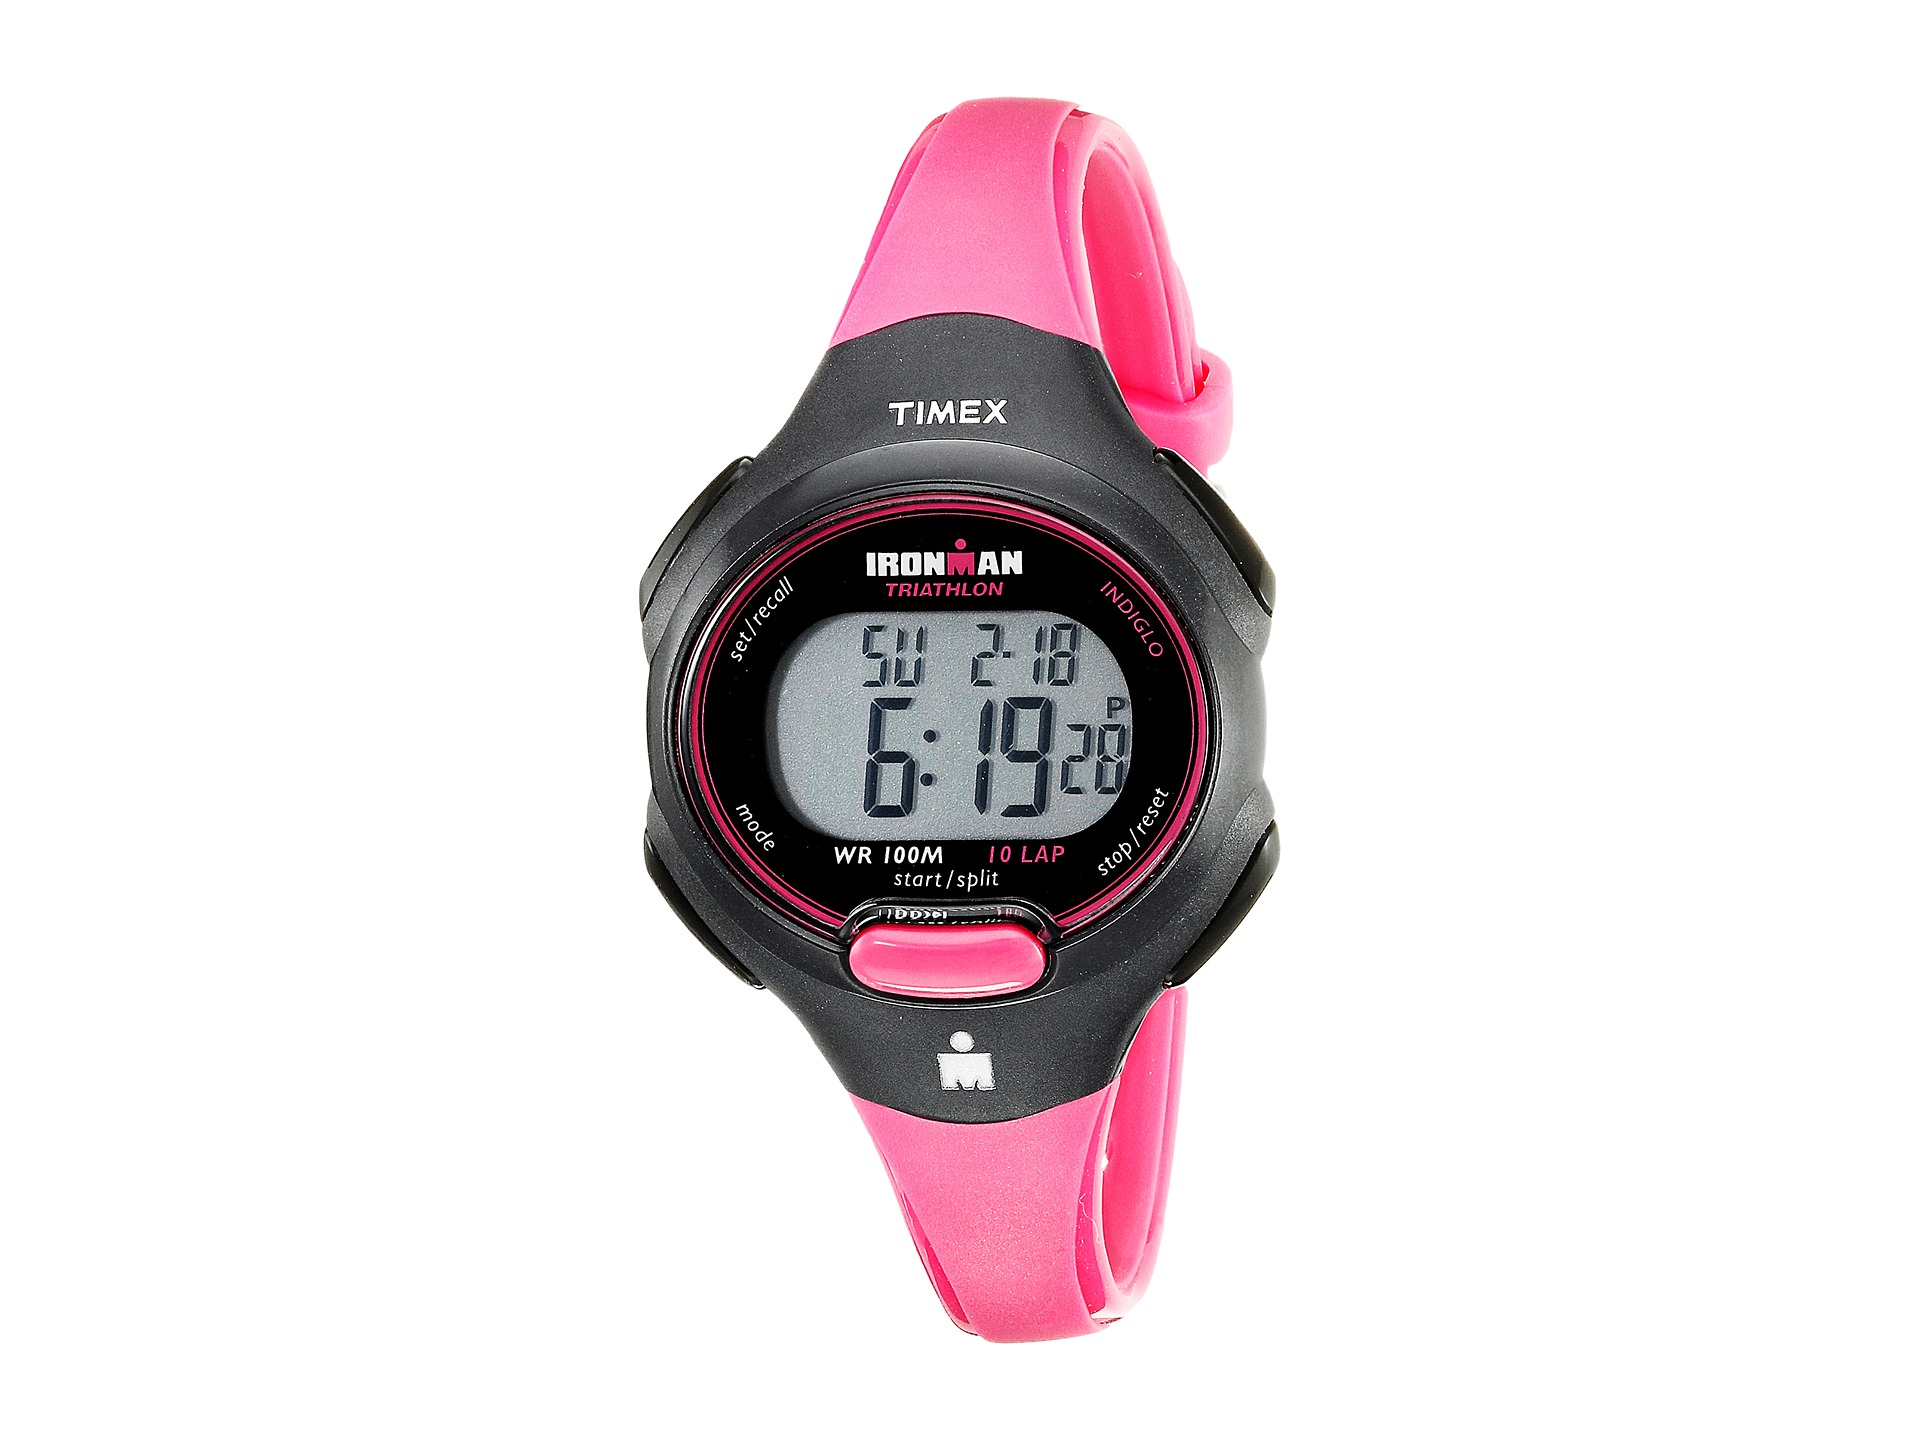 timex sport ironman pink and black mid size 10